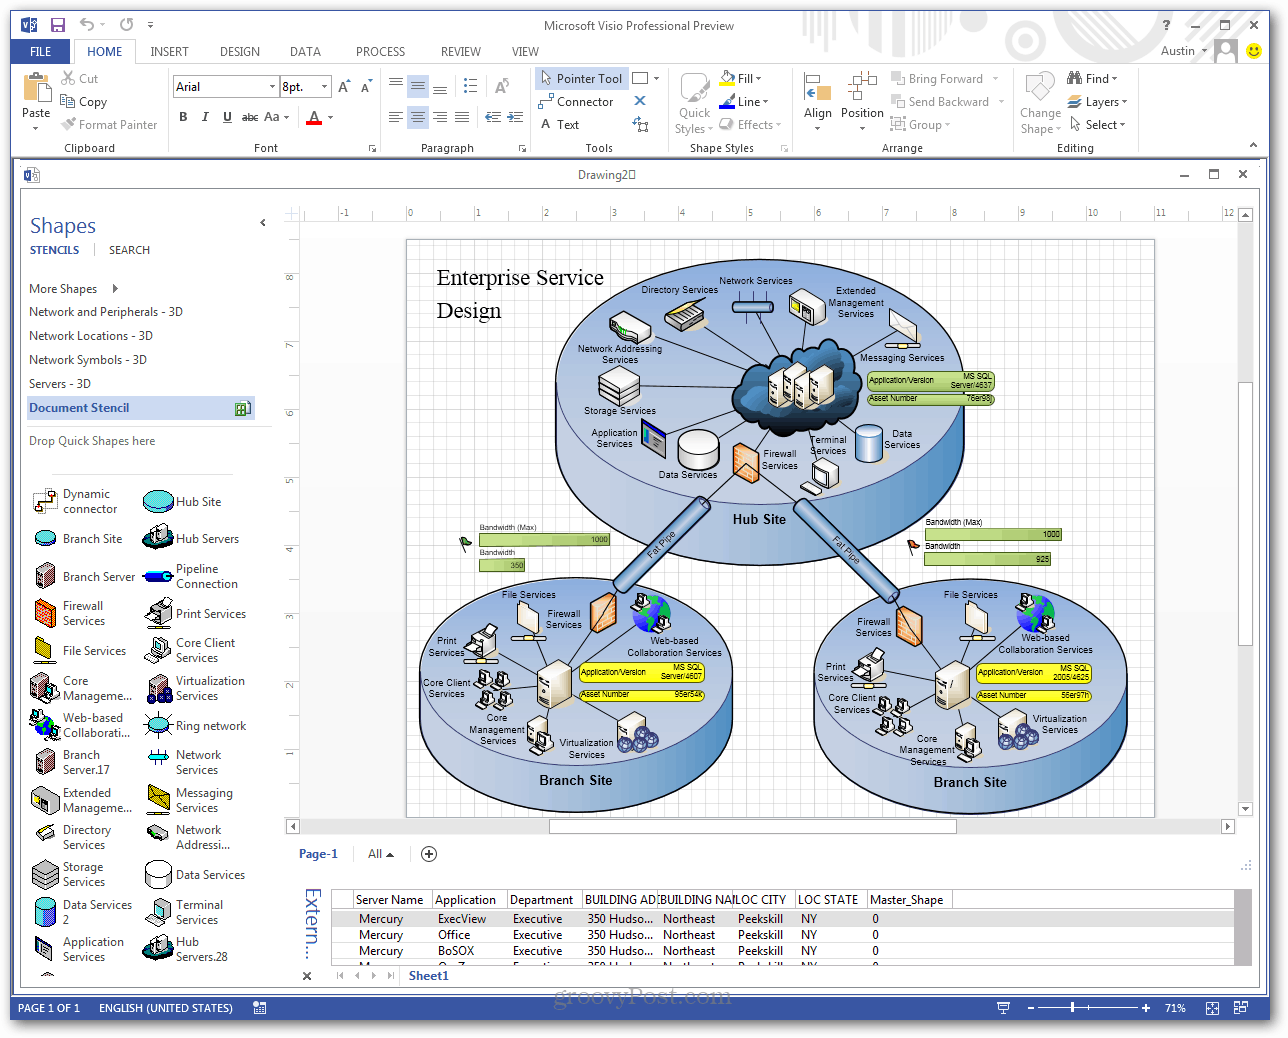 What is microsoft visio and what does it do groovypost this makes diagrams functional and current the most recent example ive seen involved using visio to monitor network status across a localized broadband ccuart Image collections